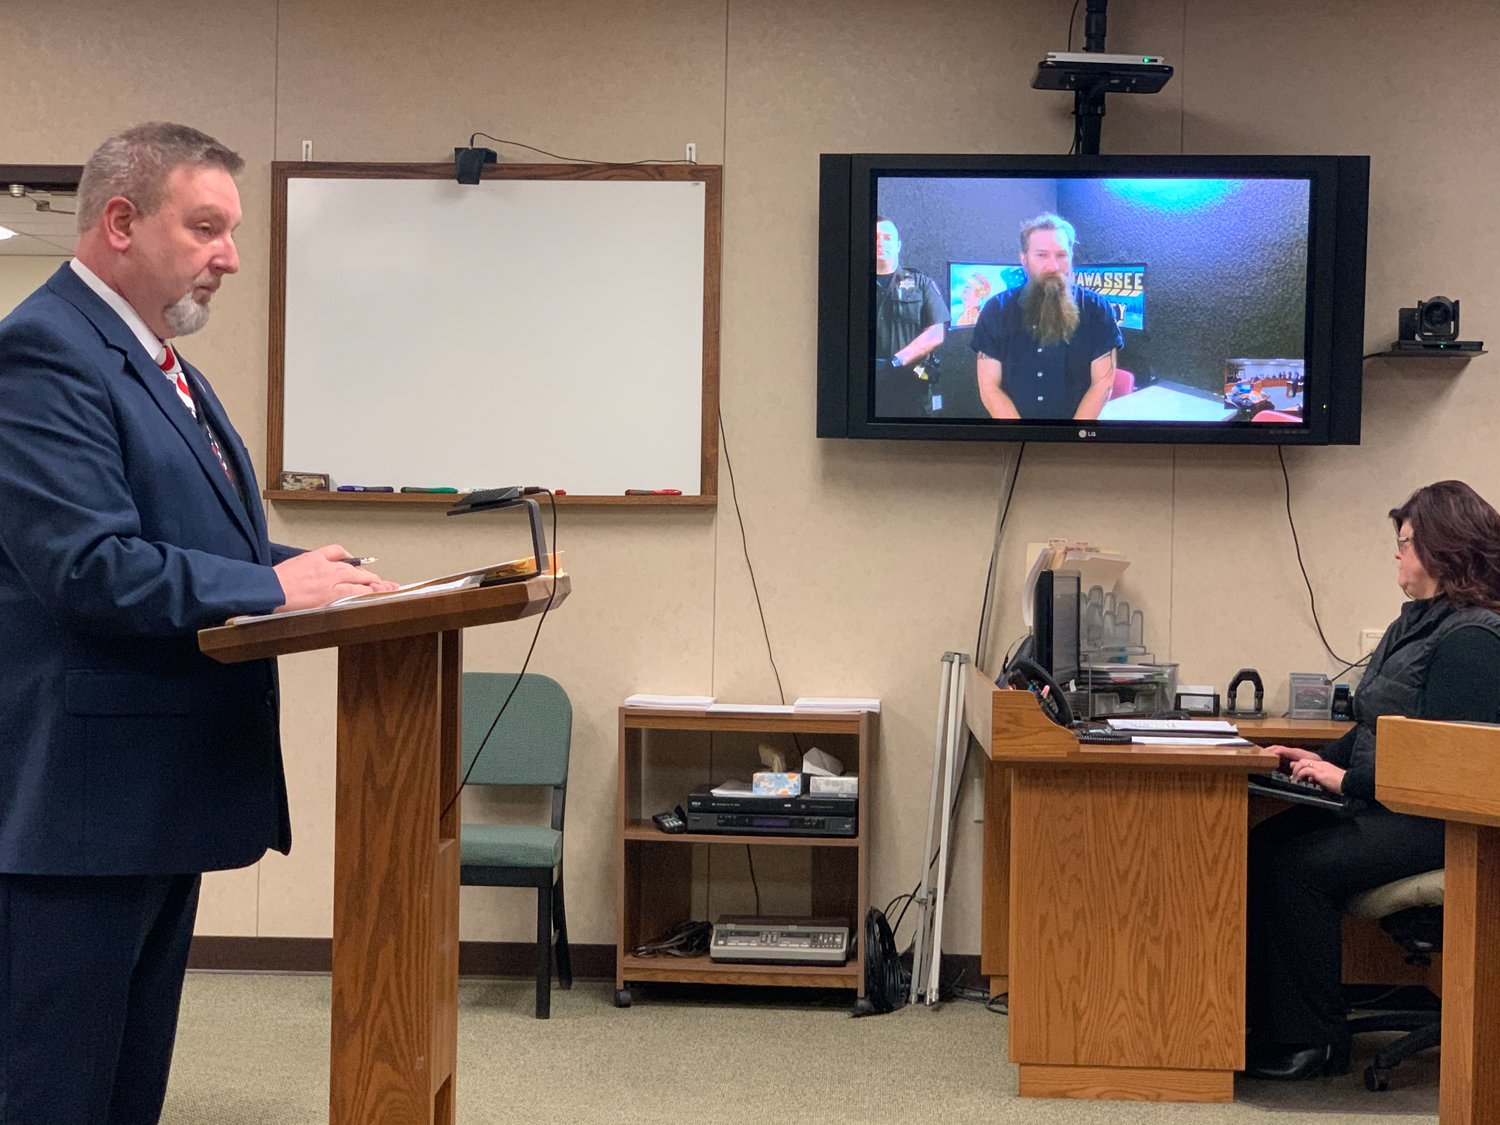 Mark David Latunski, 50, of Morrice, appeared via video feed for a hearing on Tuesday in 66th District Court.